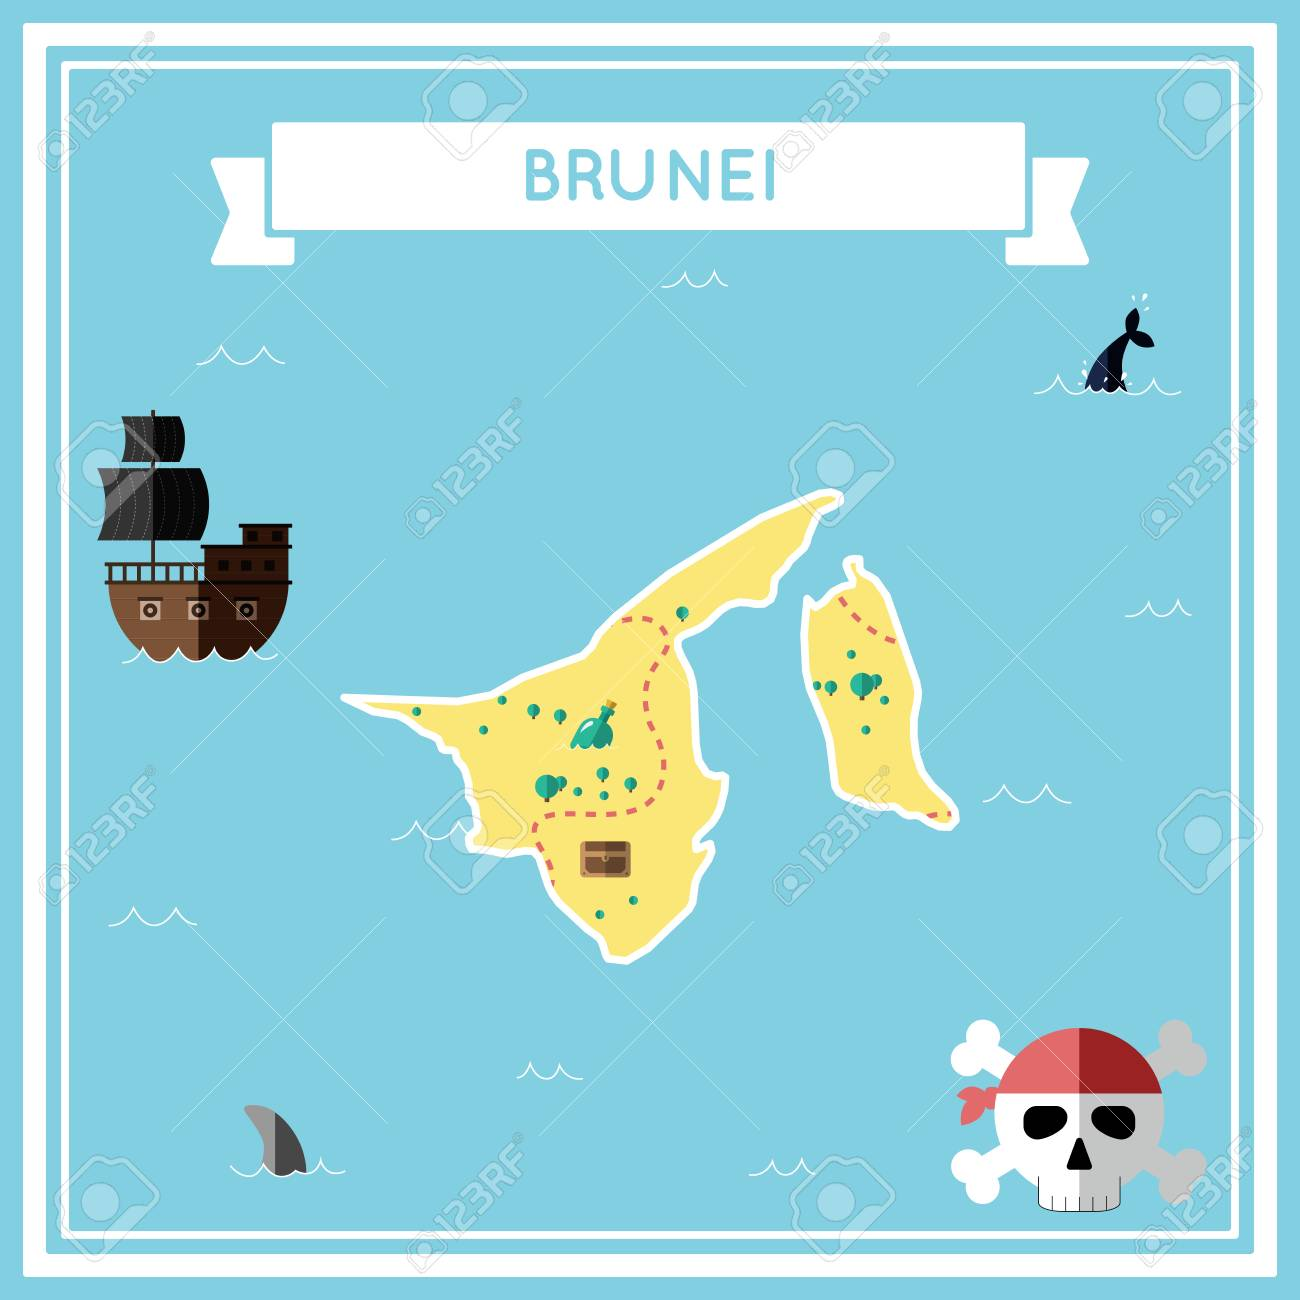 Picture of: Flat Treasure Map Of Brunei Darussalam Colorful Cartoon With Royalty Free Cliparts Vectors And Stock Illustration Image 81917193